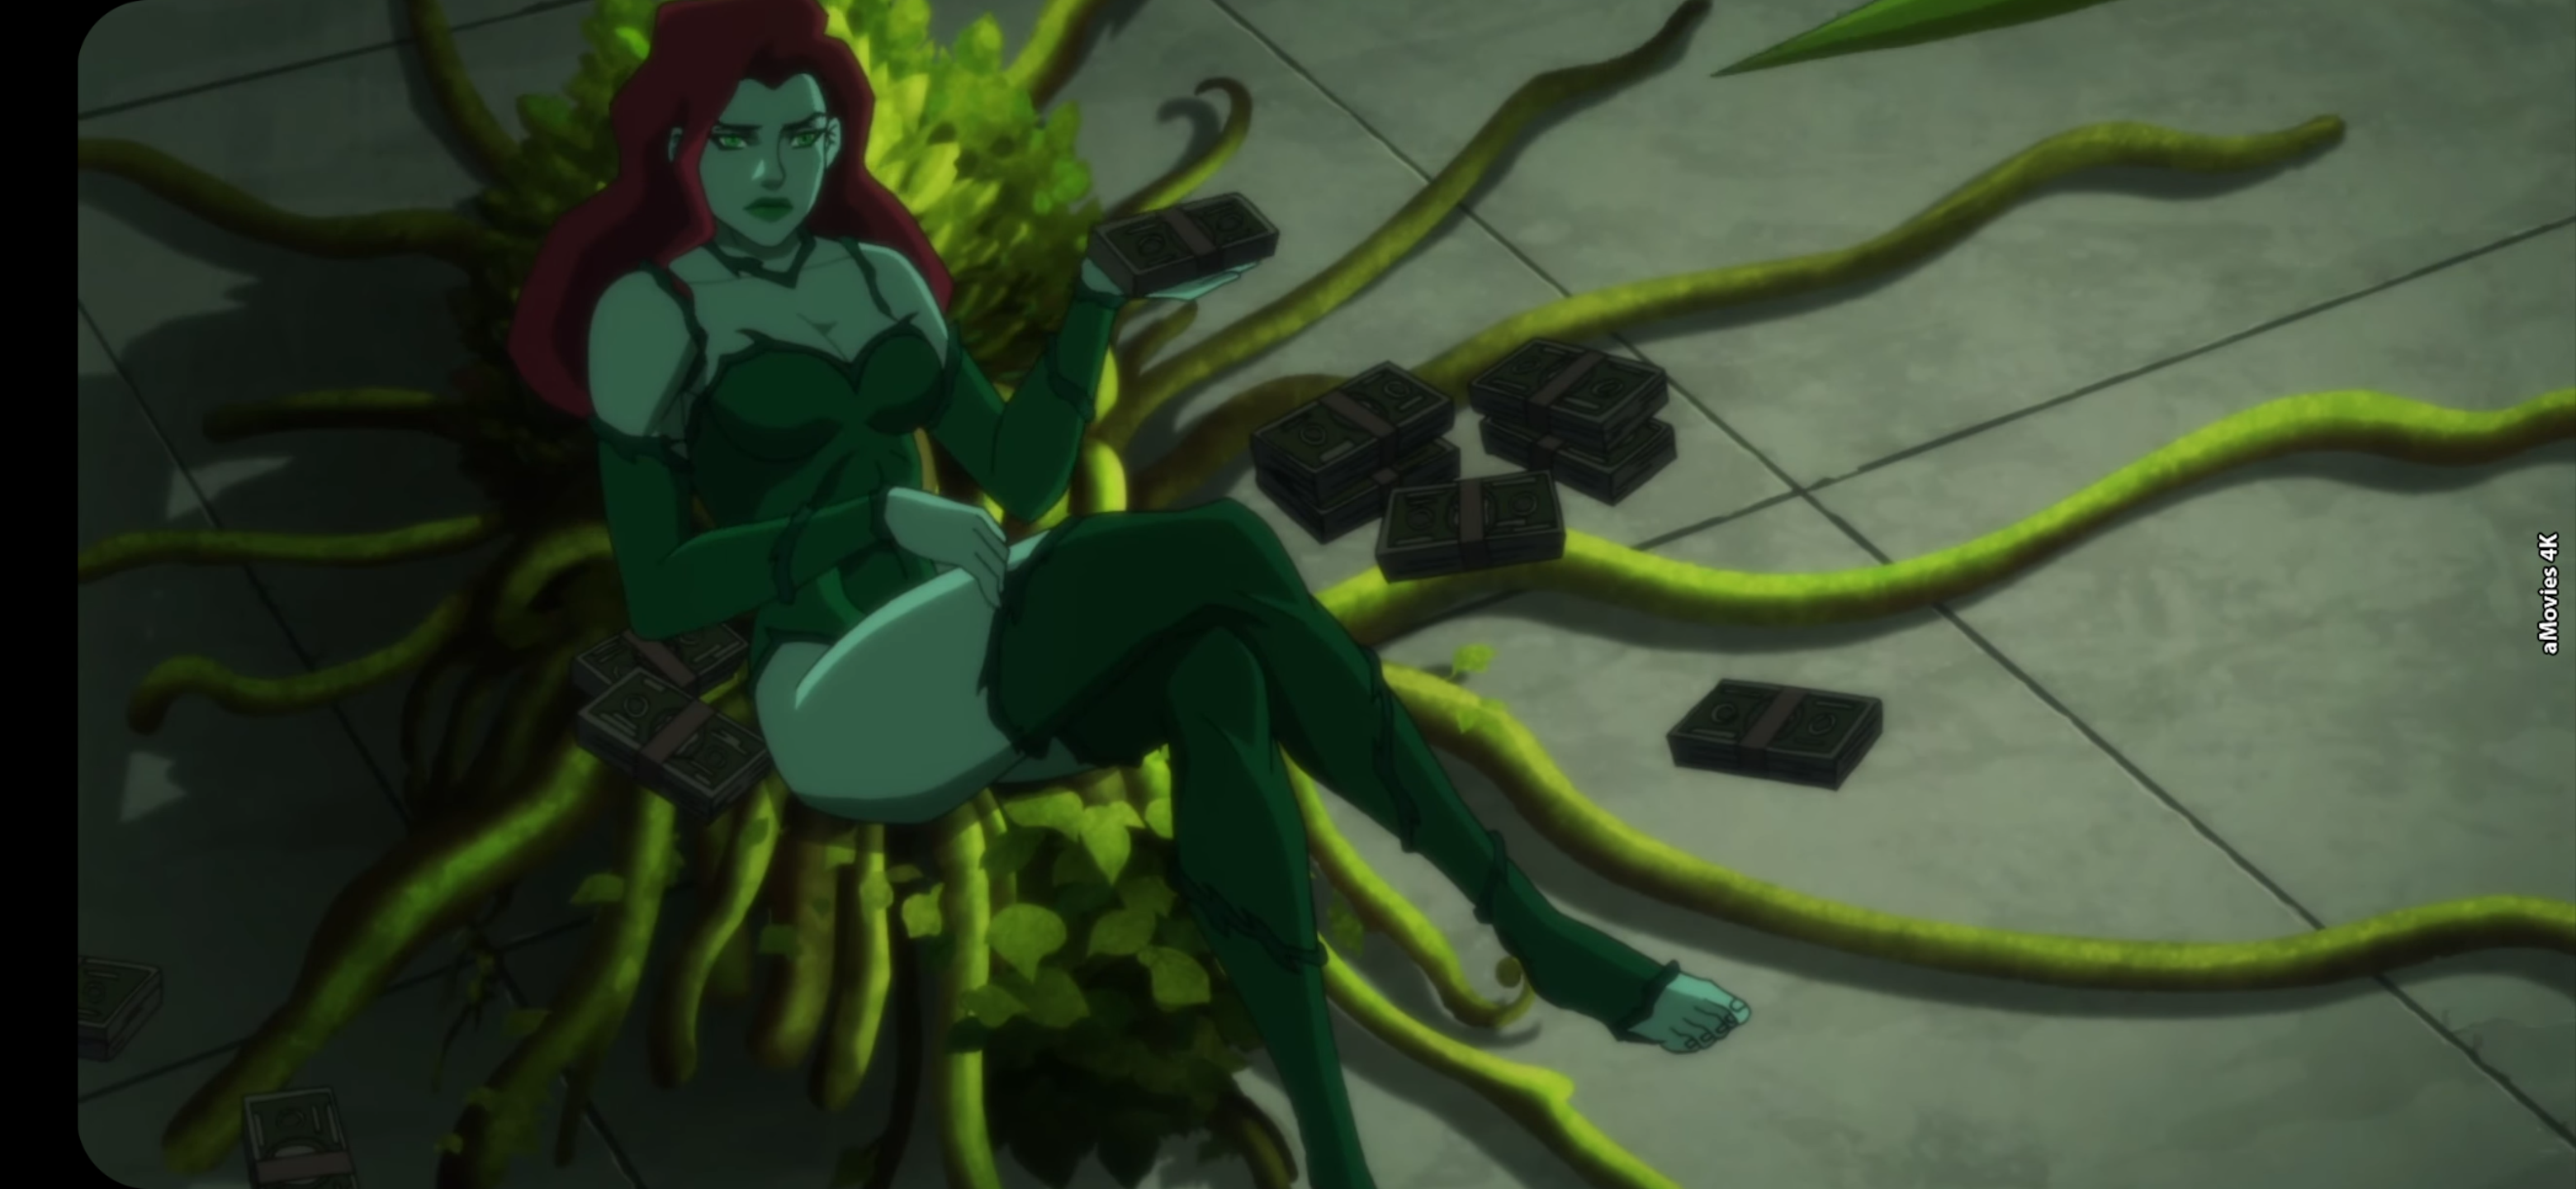 Other Poison Ivy Is A Mood Batman Hush Poison Ivy Dc Comics Batman Hush Poison Ivy